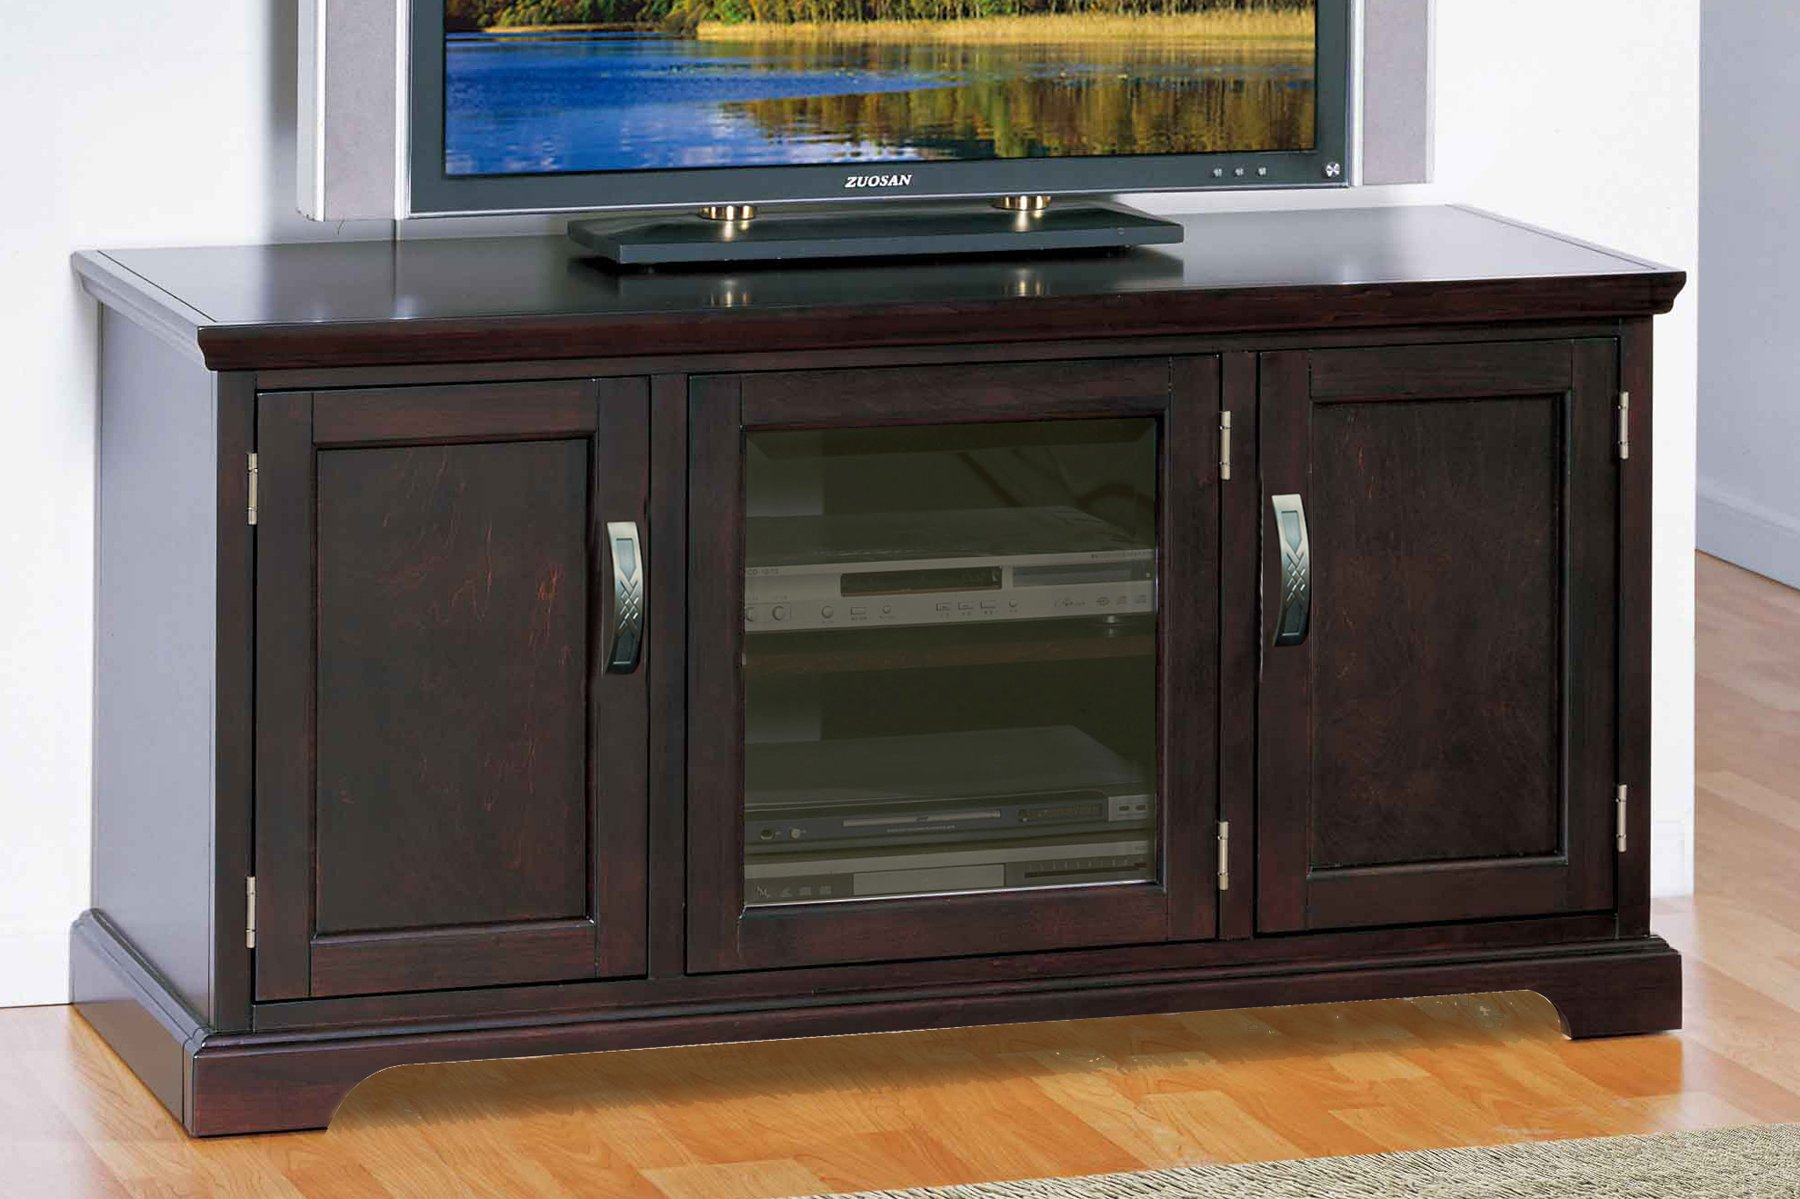 Leick 81350 Riley Holliday TV Stand by Leick Furniture